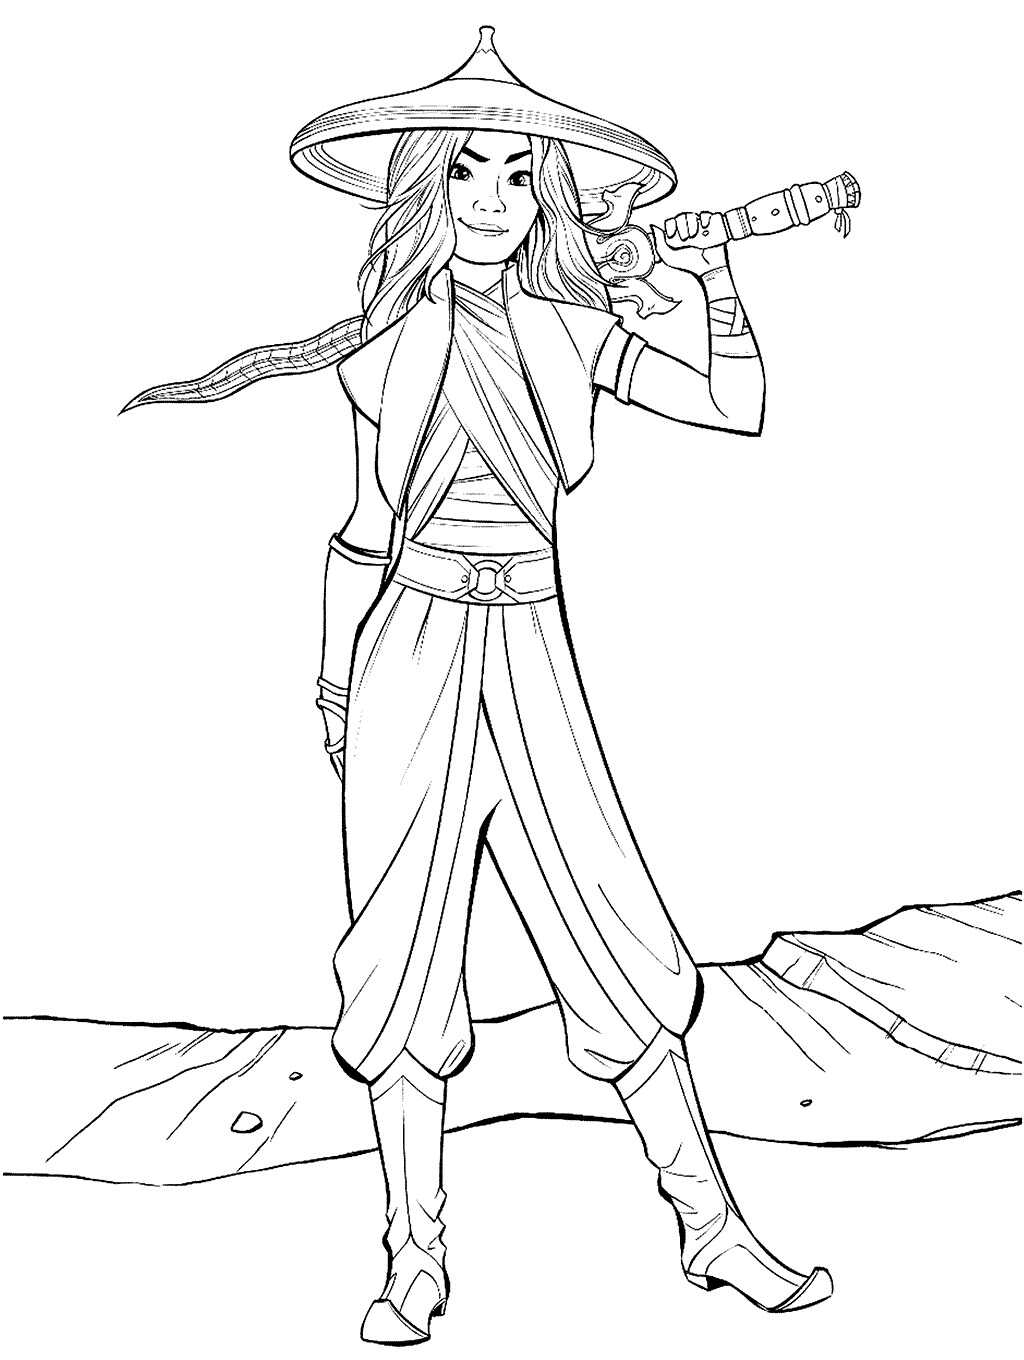 Warrior Raya holds her sword Coloring Page